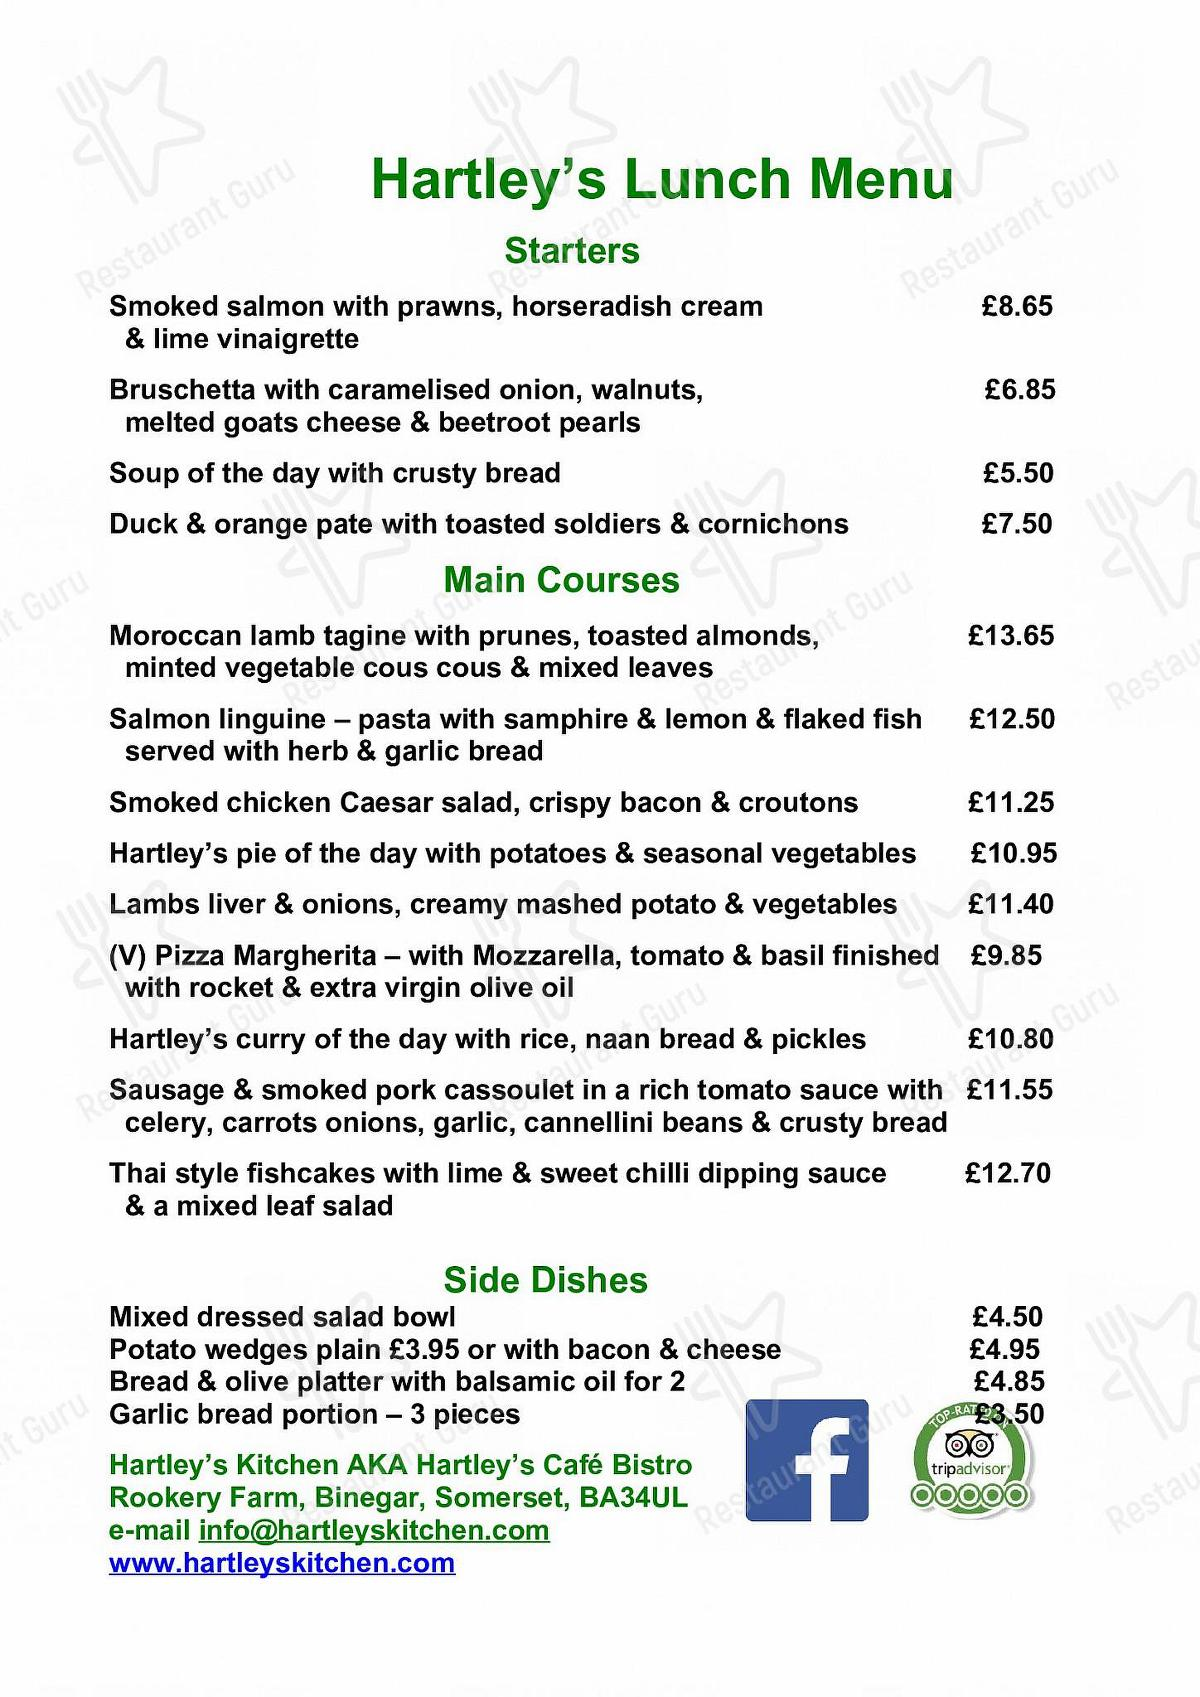 Check out the menu for Hartleys Kitchen